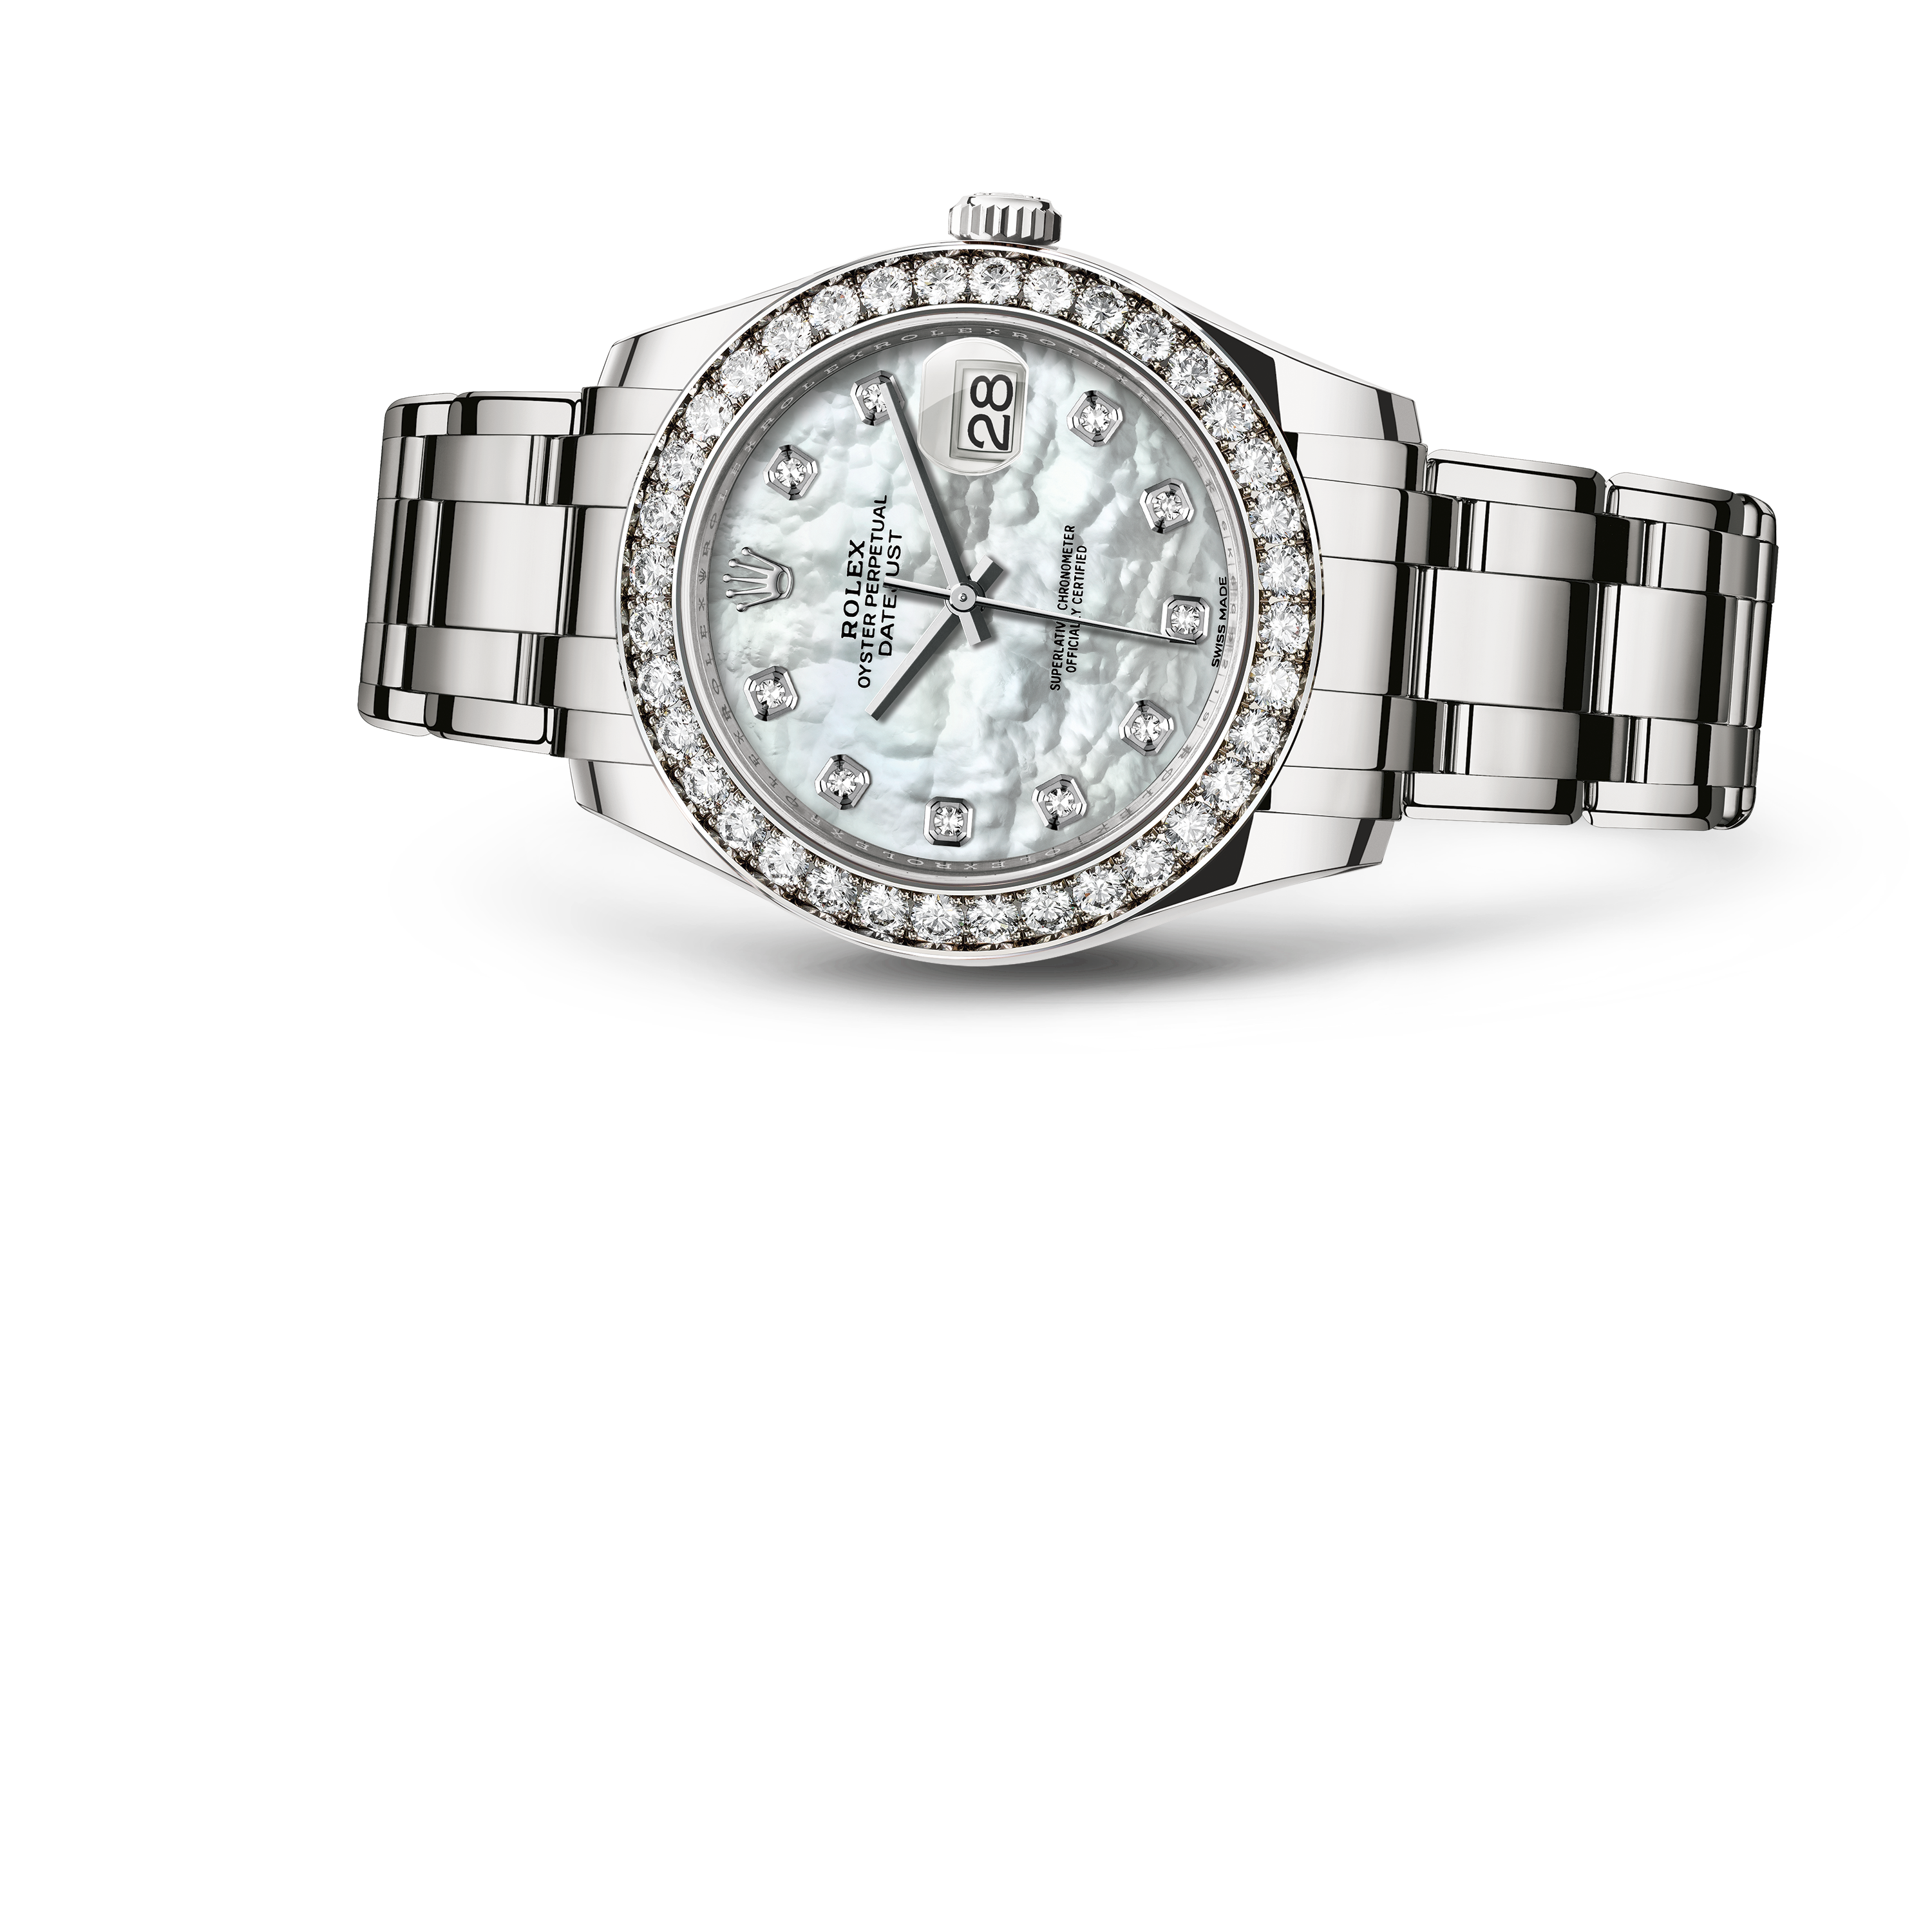 Rolex Pearlmaster 39 M86289-0001